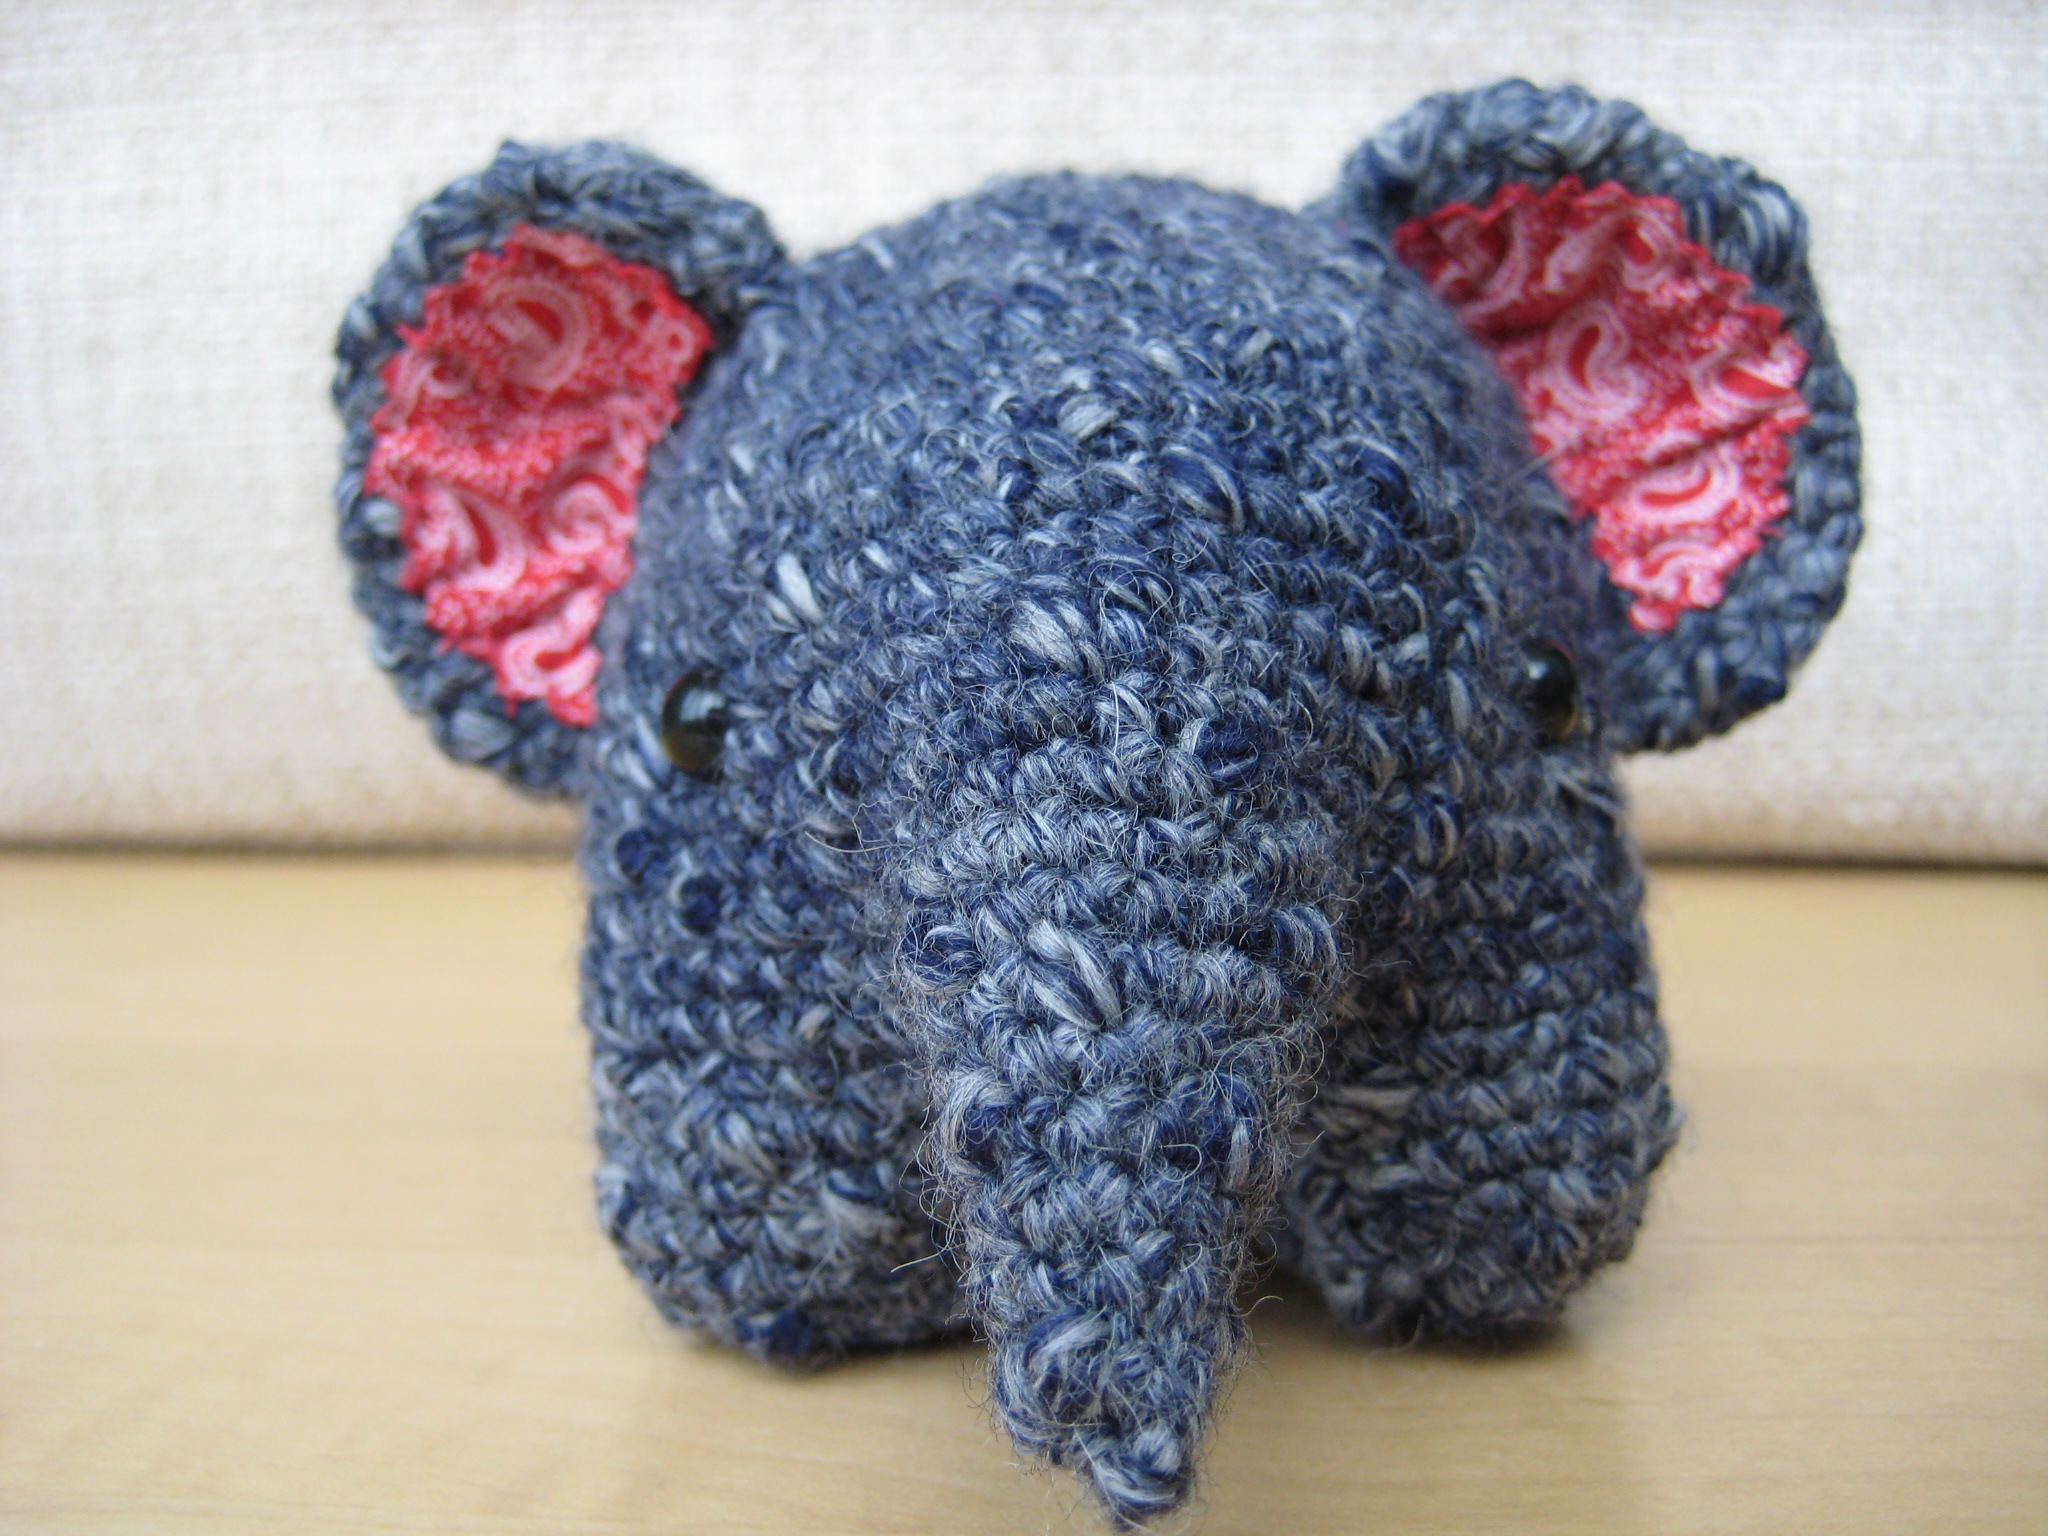 Crochet Impossible - Amigurumi Elephant PART 2 (LEFTIE) - YouTube | 1536x2048